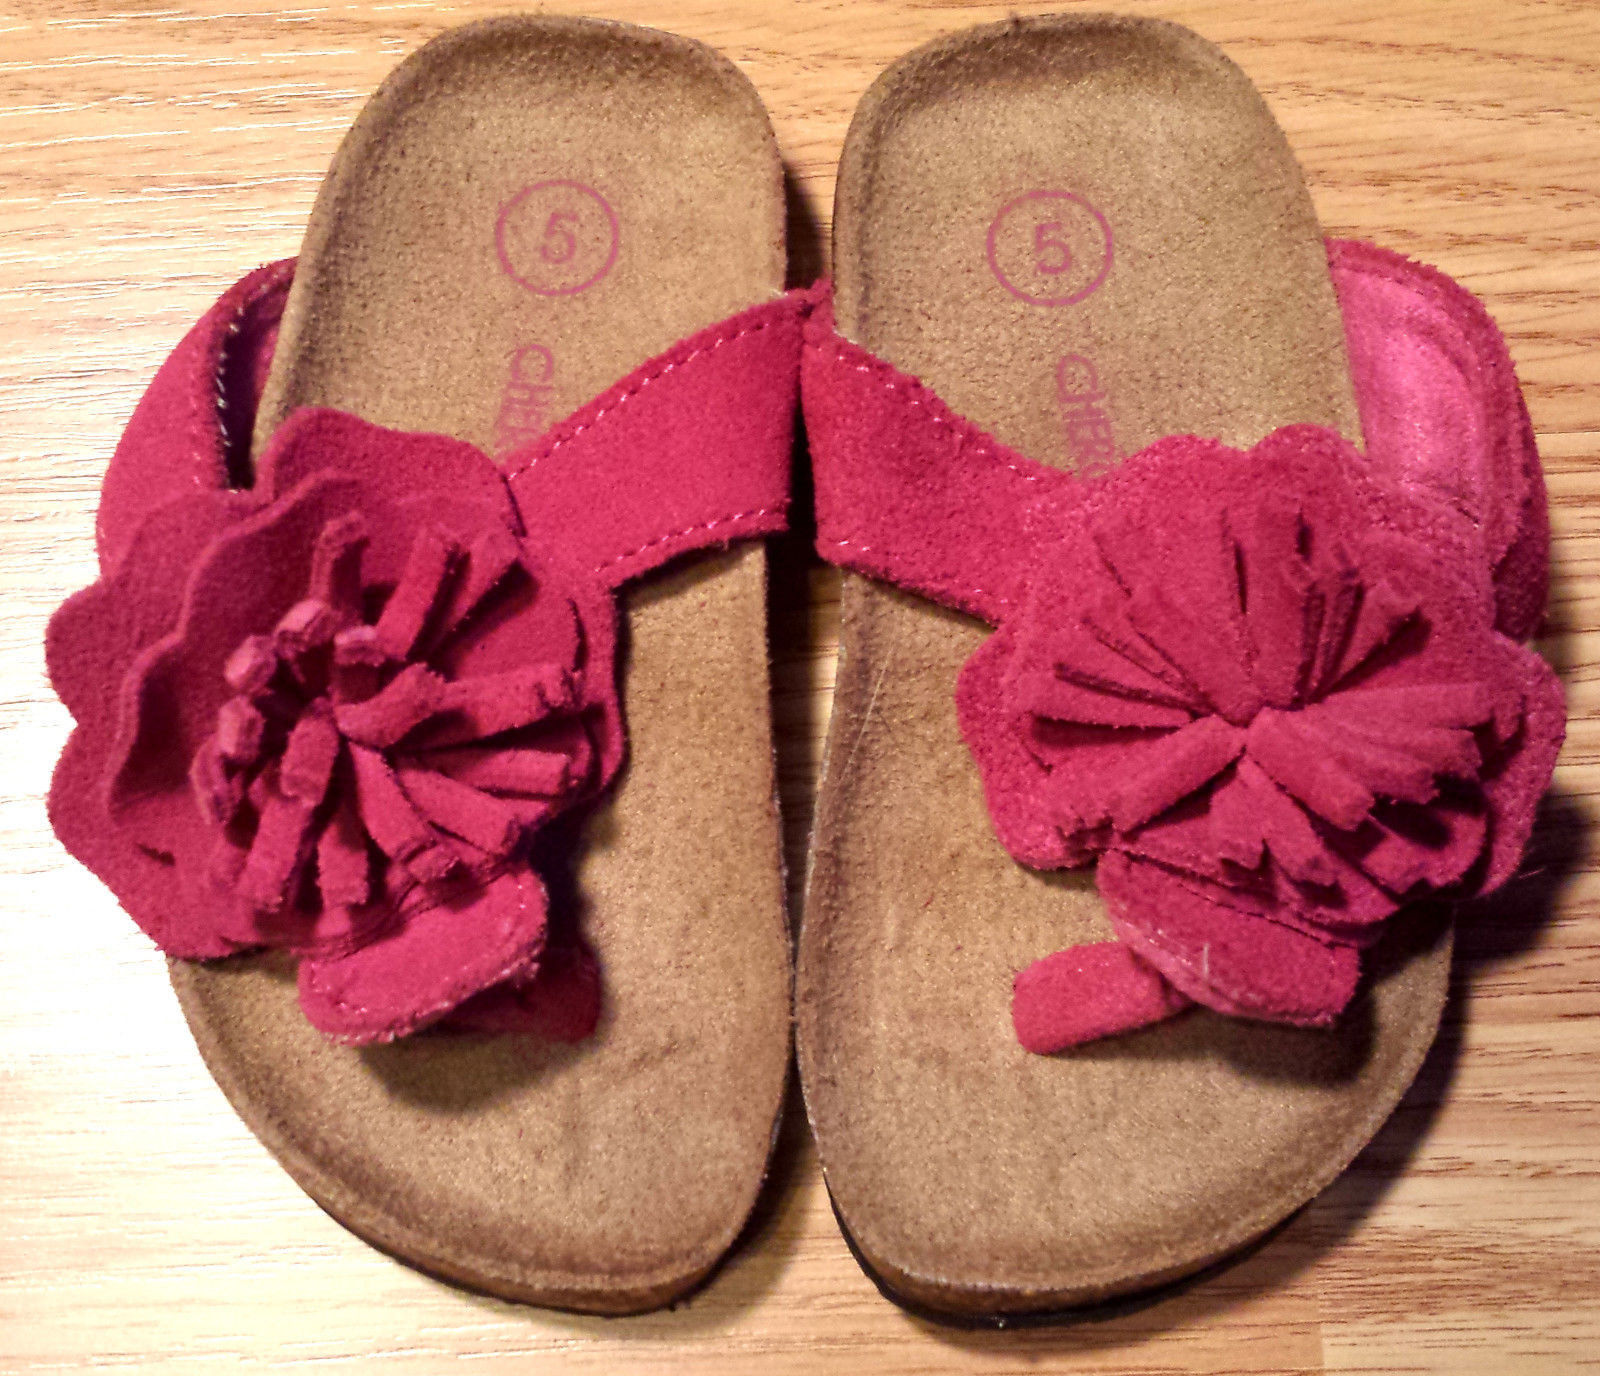 Girl's Size 5 Baby Toddler Pink Leather Upper Floral Designed Cherokee Sandals